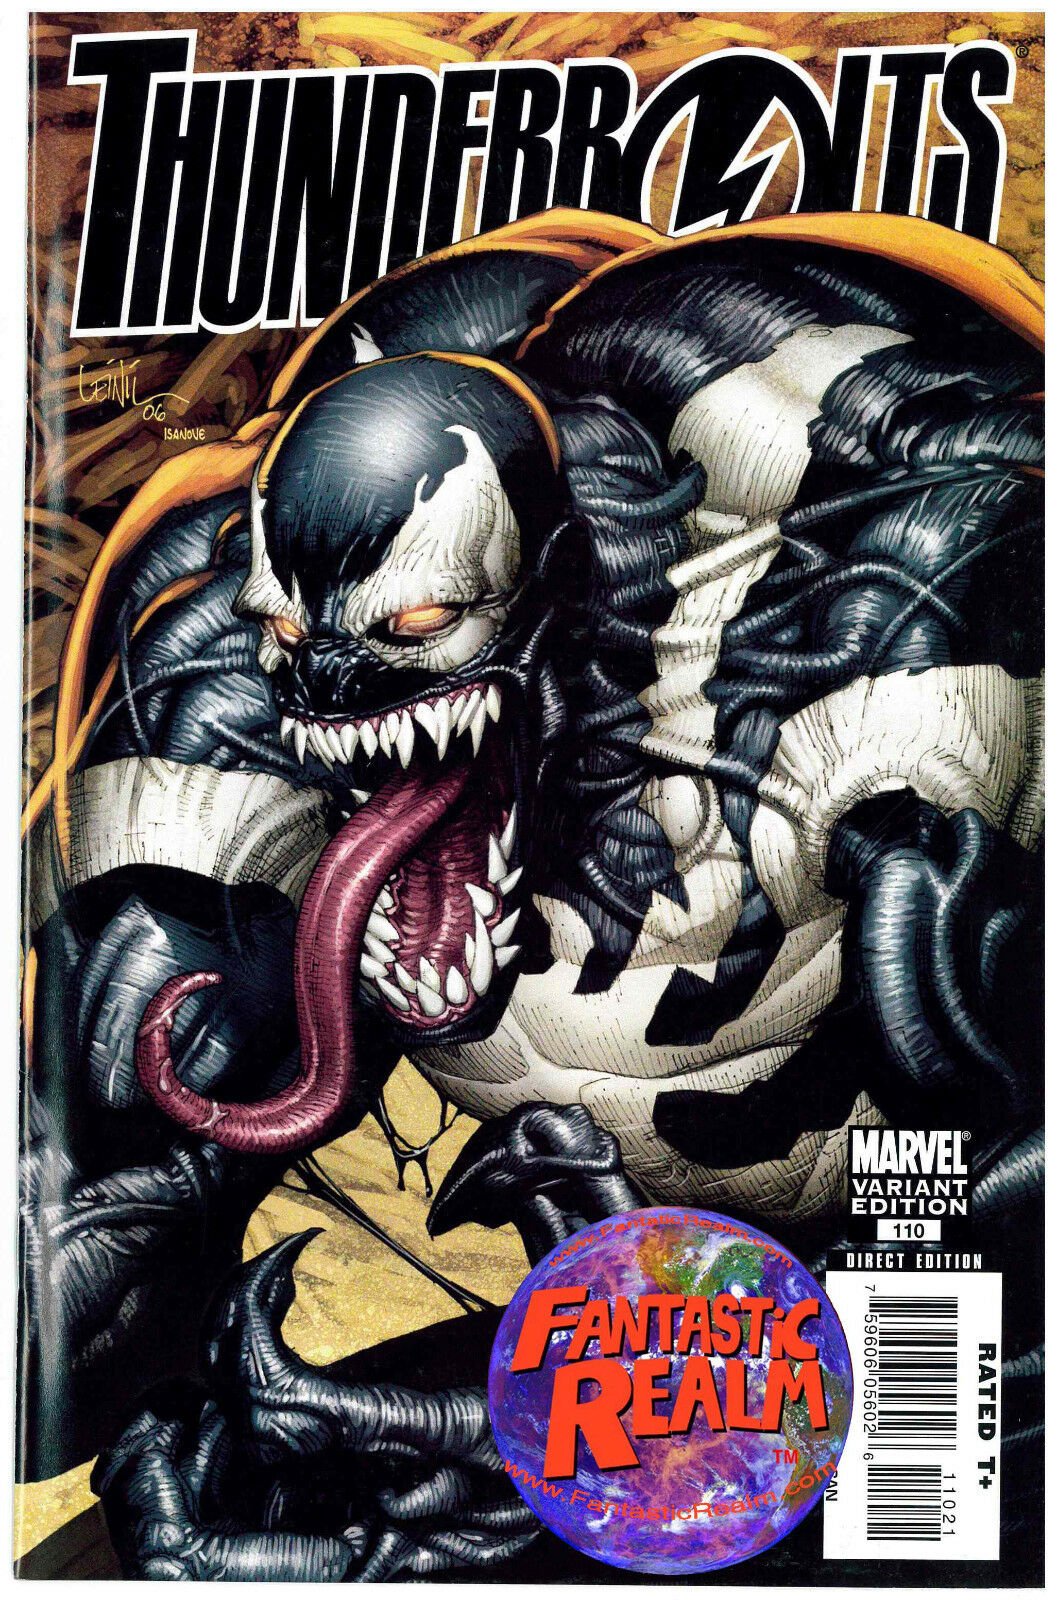 THUNDERBOLTS #110 LEINIL YU VENOM VARIANT COVER MARVEL COMICS